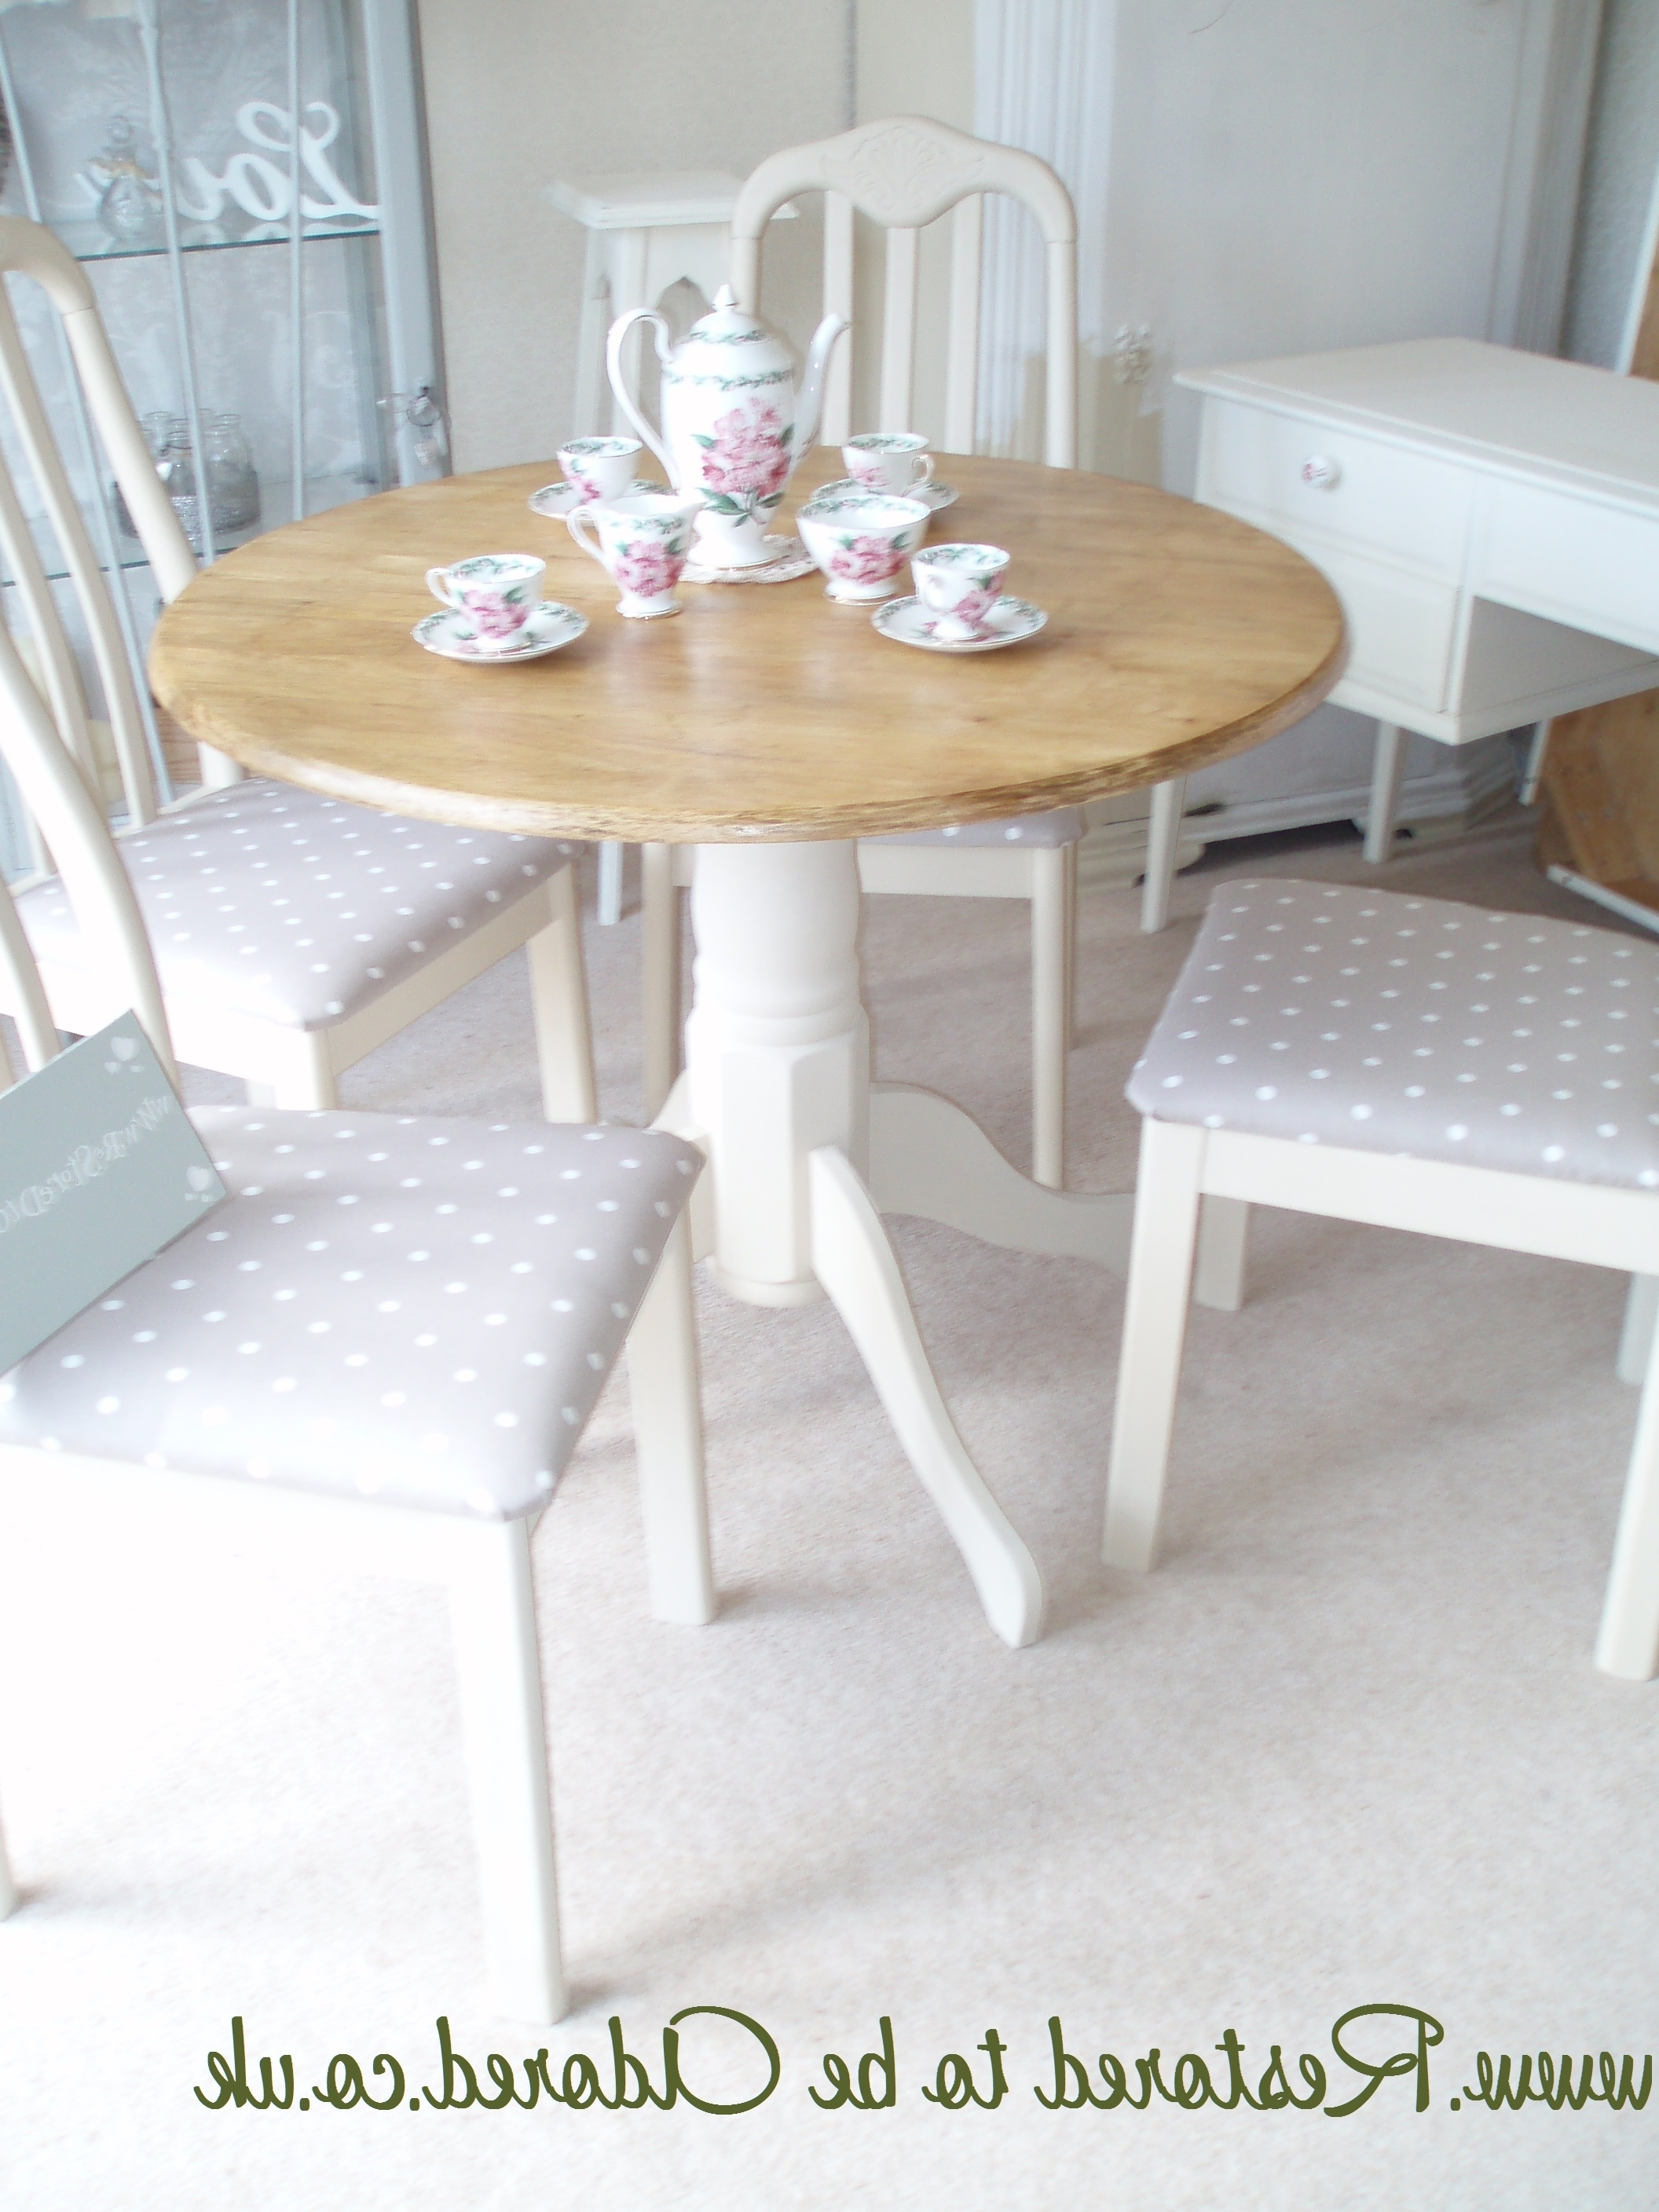 Shabby Chic Dining Sets With Regard To Preferred Shabby Chic Dining Table And Chairs Set – Castrophotos (View 16 of 25)